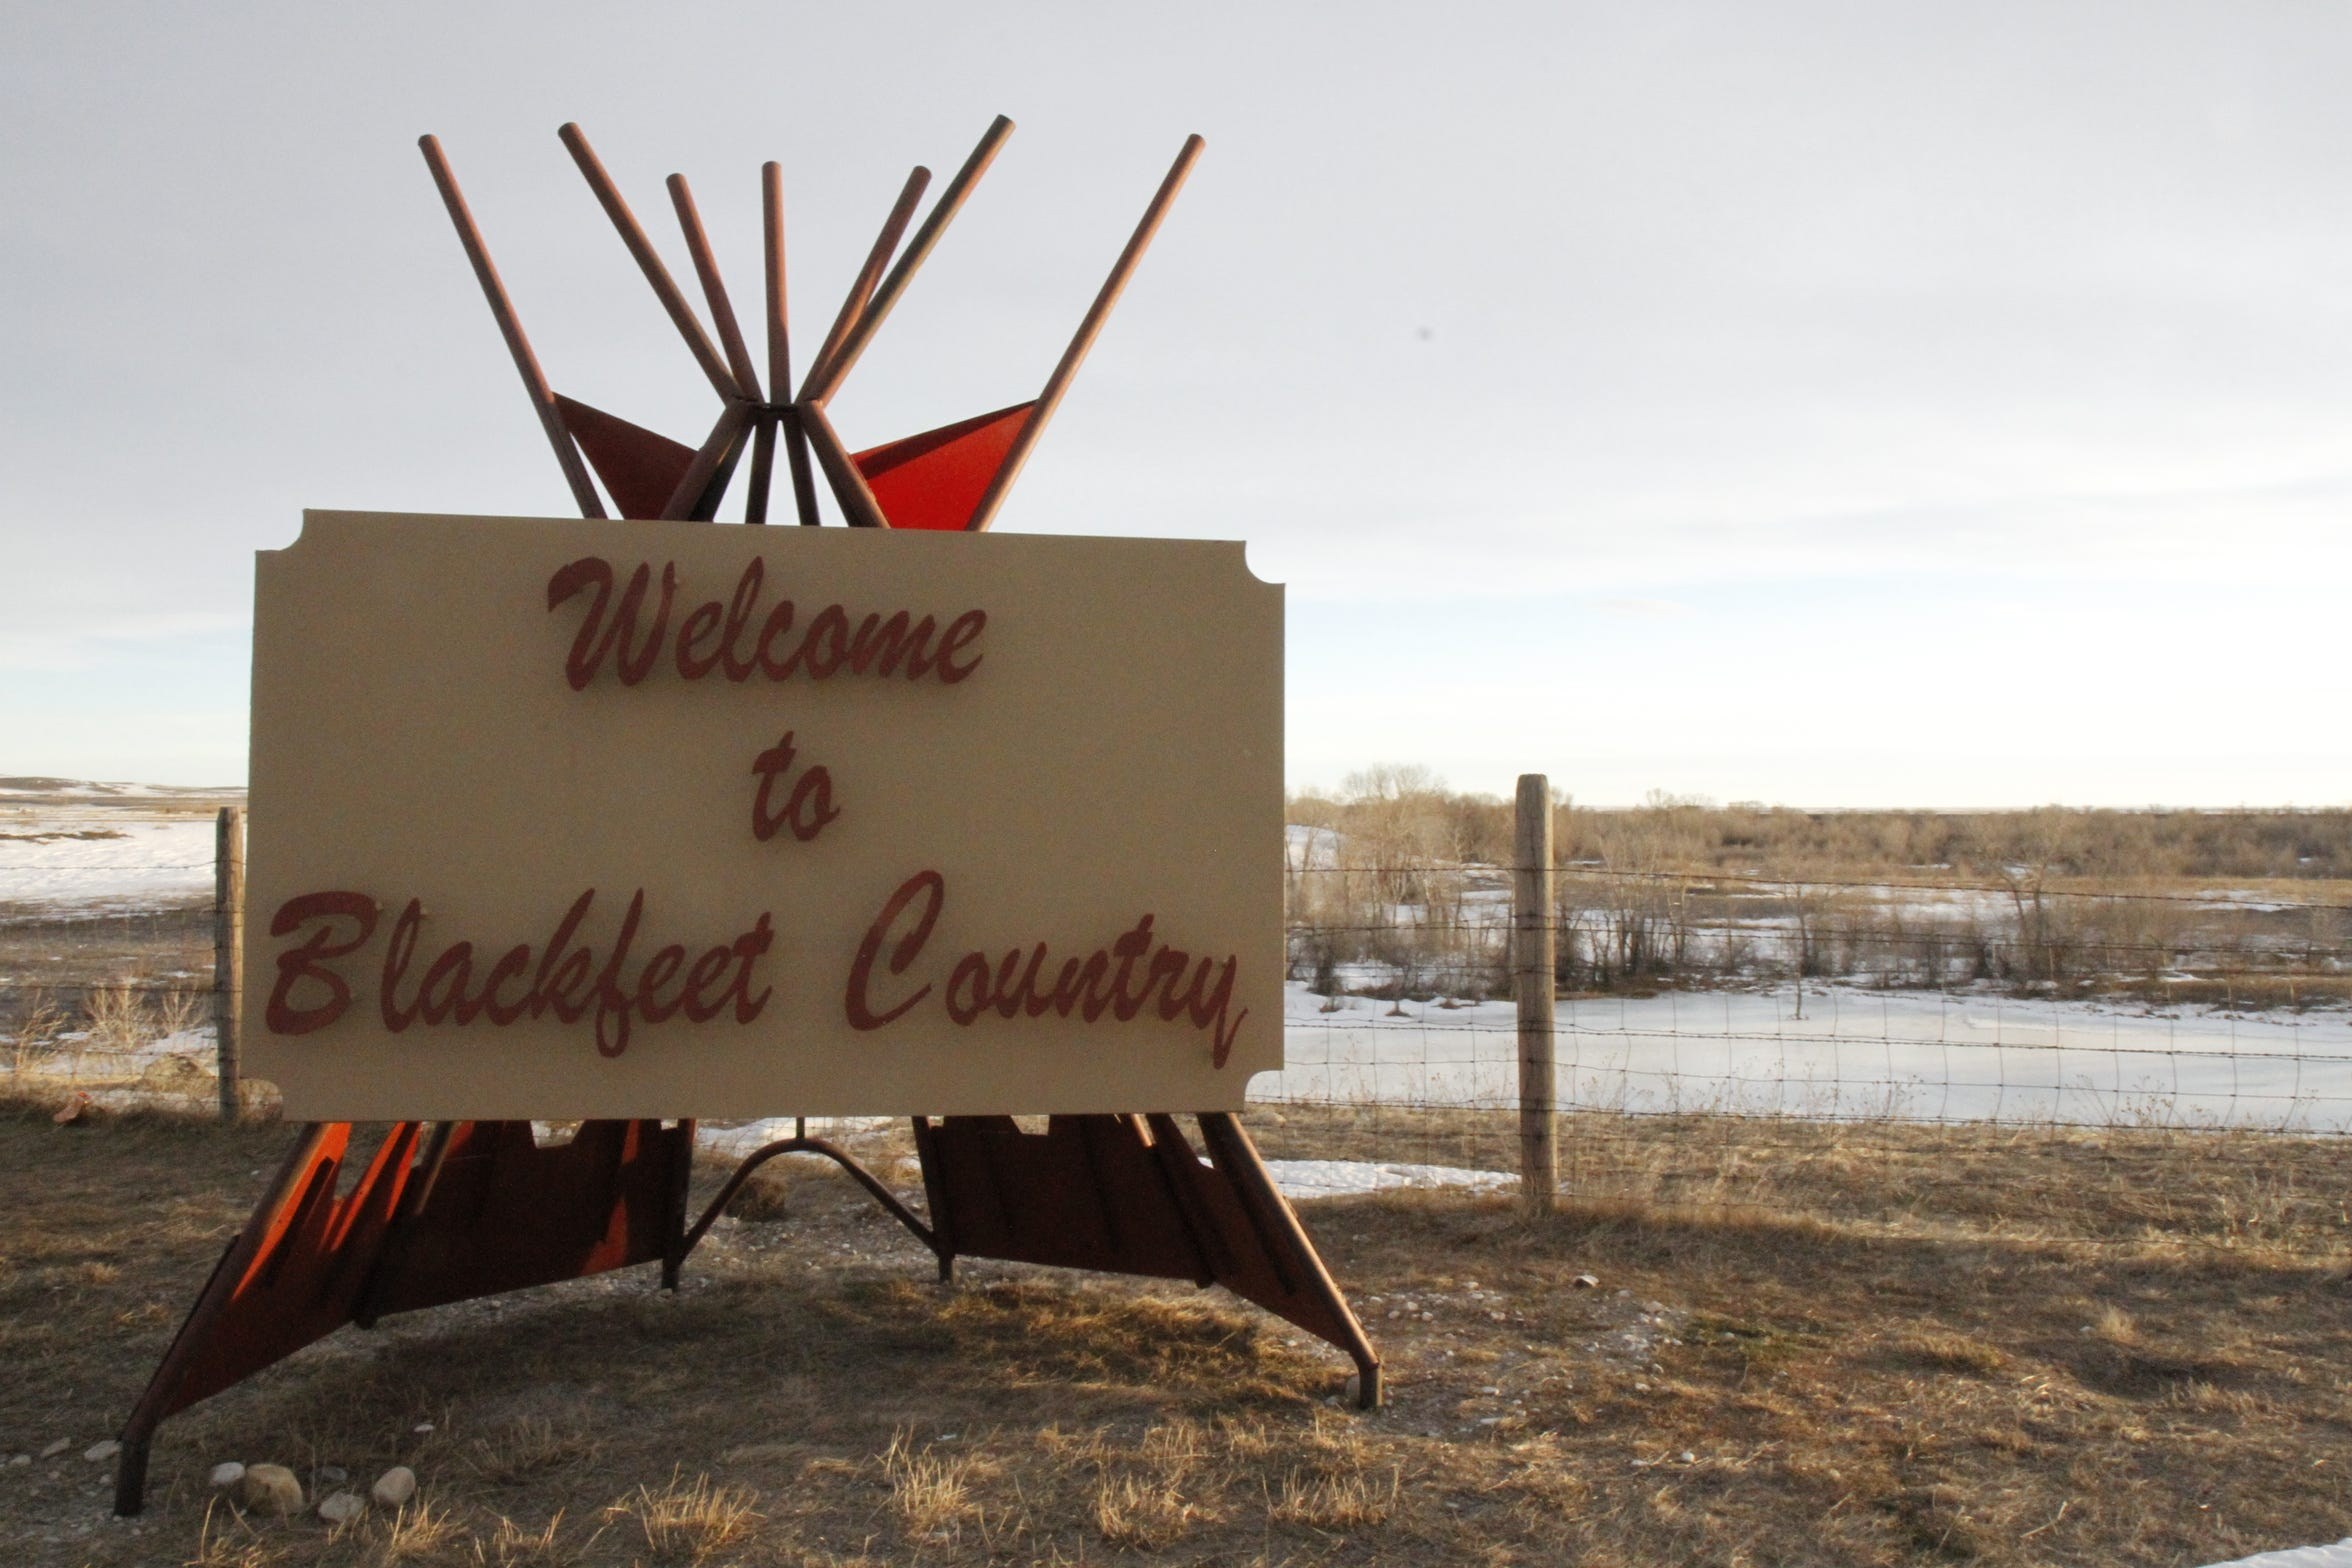 The Blackfeet Nation has taken a number of precautions to prevent the spread of COVID-19.